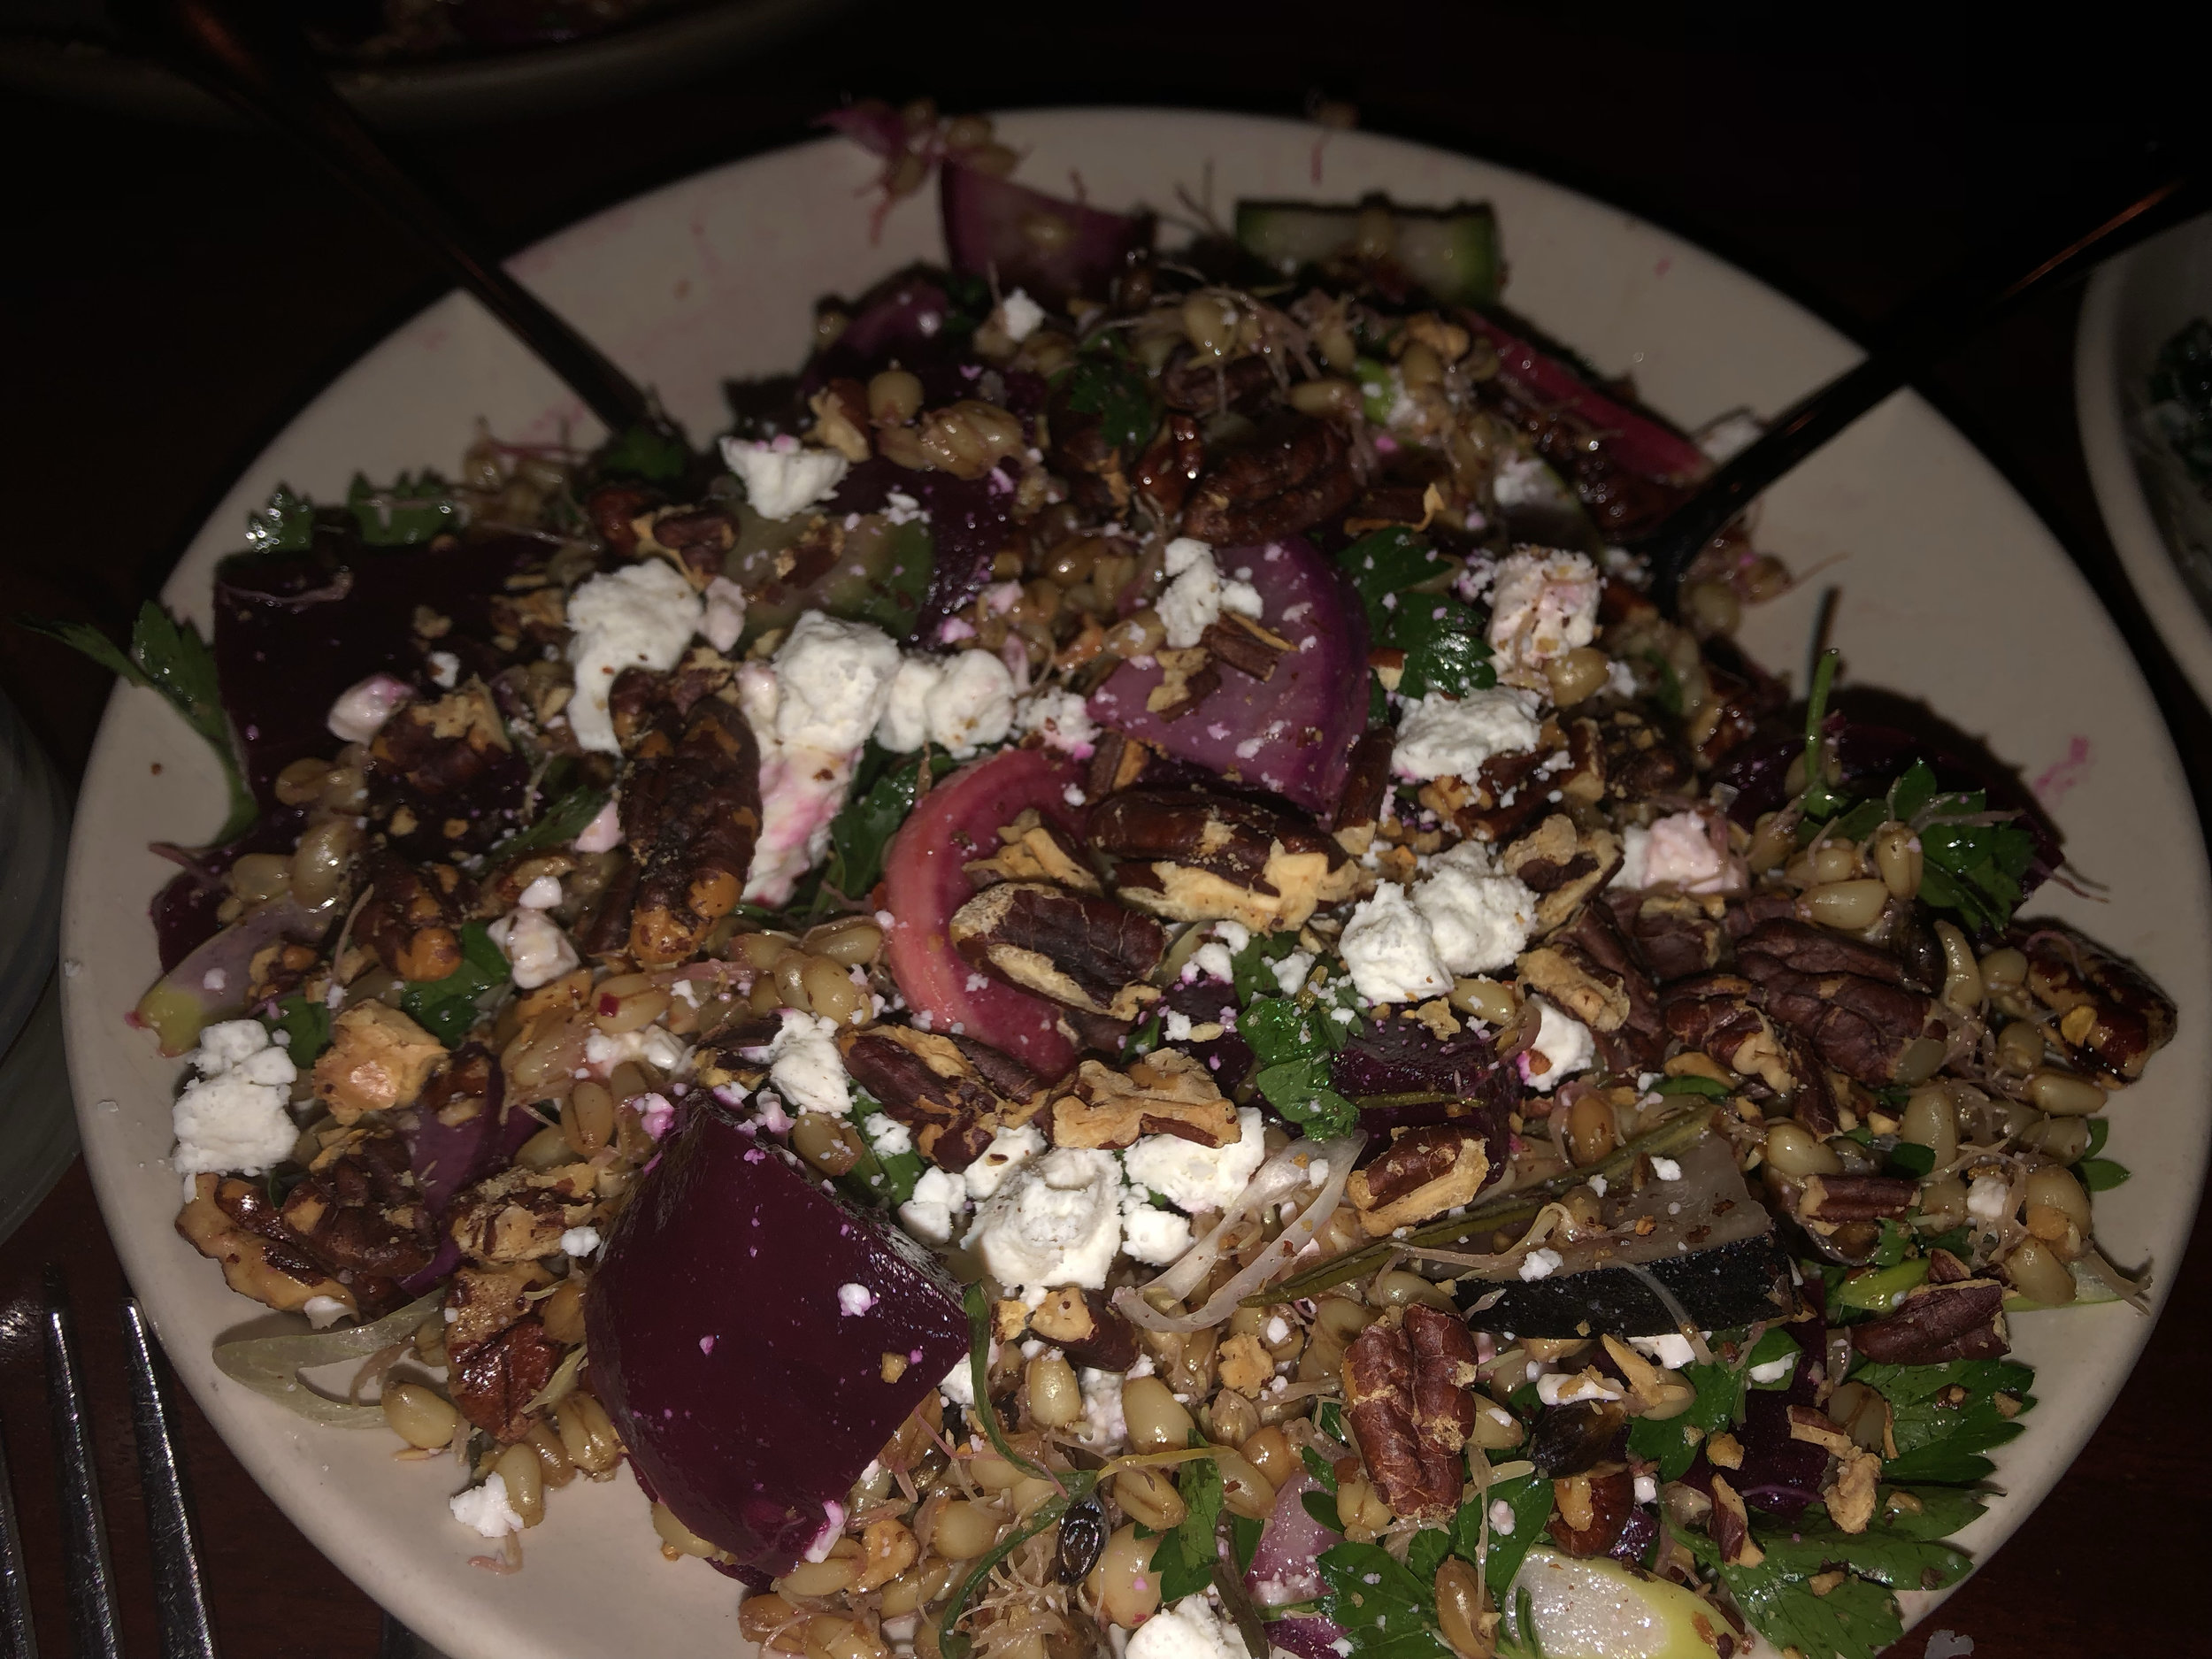 The second appetizer we had in the run-up to our entrees was this truly unique and savory salad. Listed under Gardina as: Beets, Barley, Winter Radishes, Feta, Pecans…this salad went very well with the garlic bread. Image Courtesy: Dan Meyers